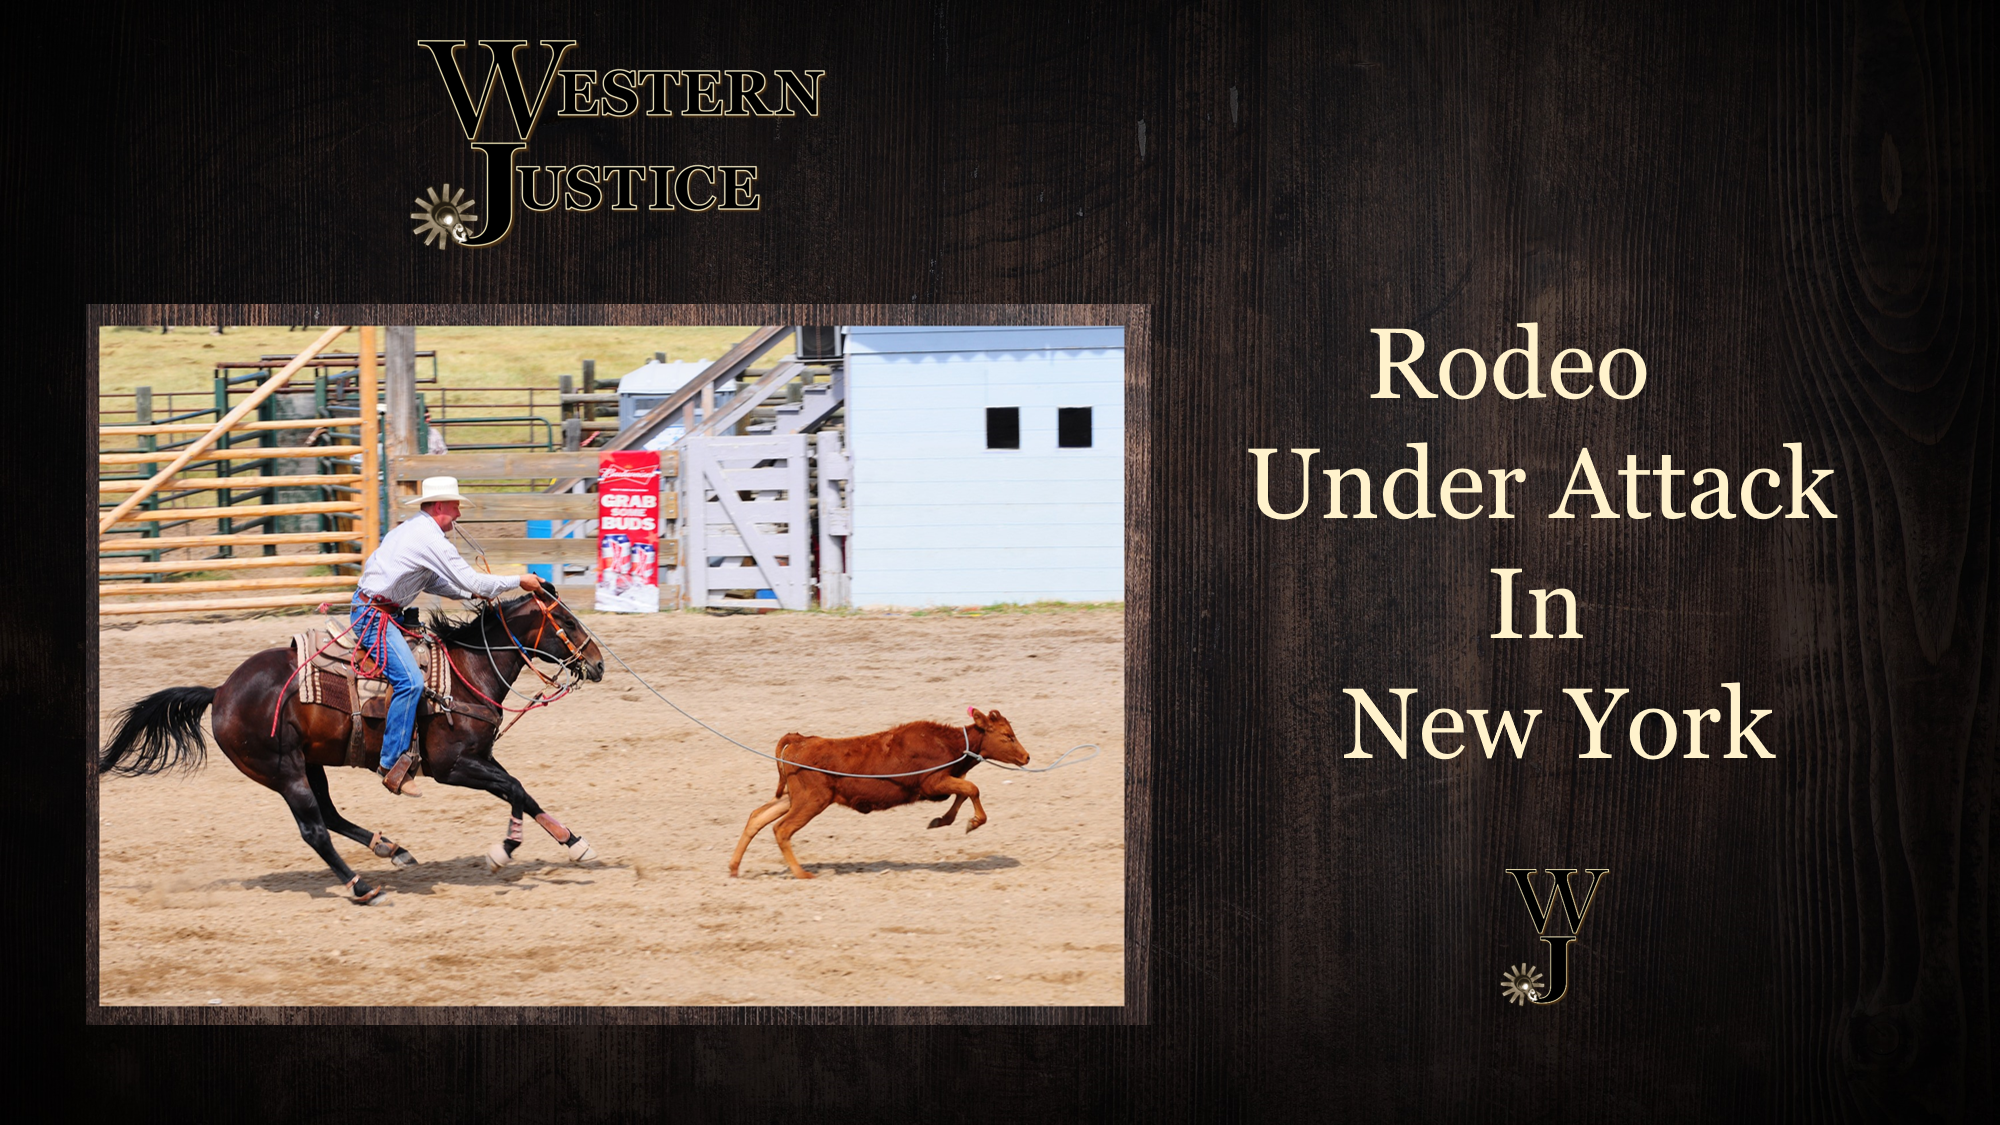 Rodeo Under Attack In New York